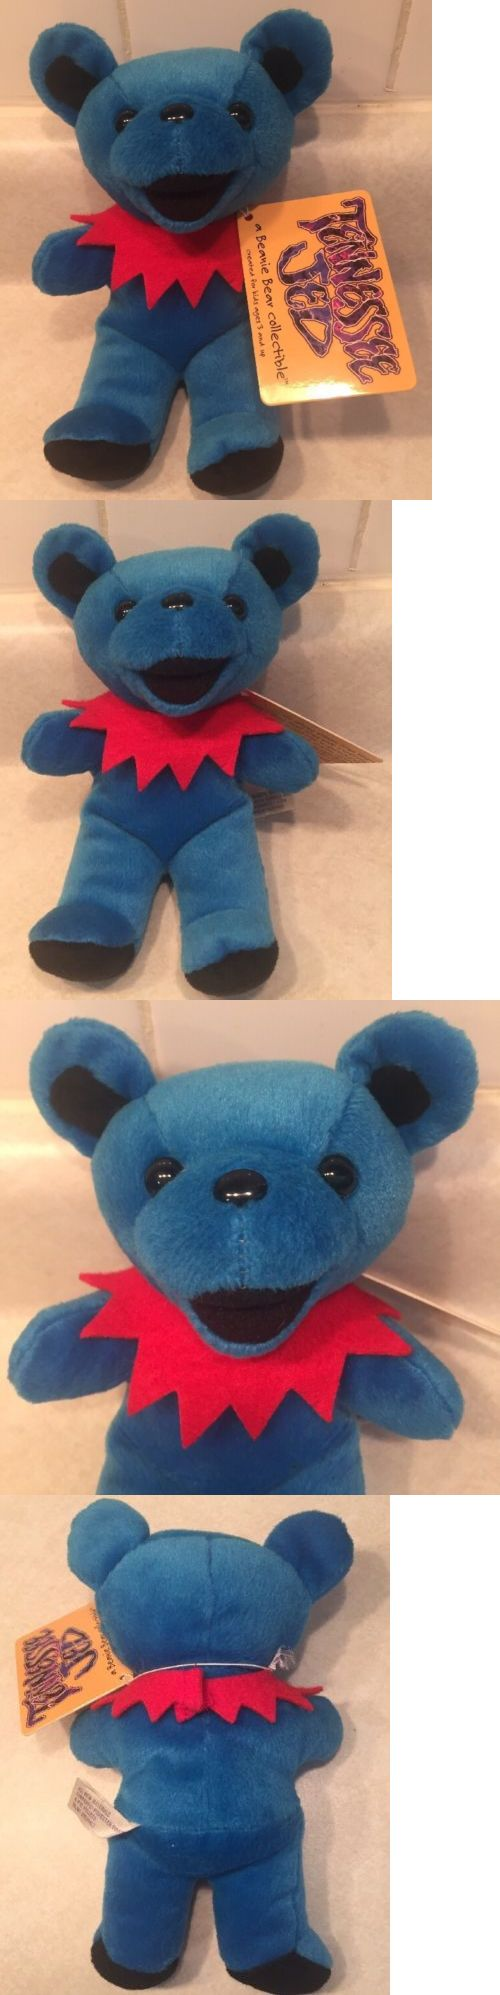 28d80b12fee Beanbag Plush 49019  Grateful Dead Tennessee Jed Bear -  BUY IT NOW ONLY    11.75 on eBay!